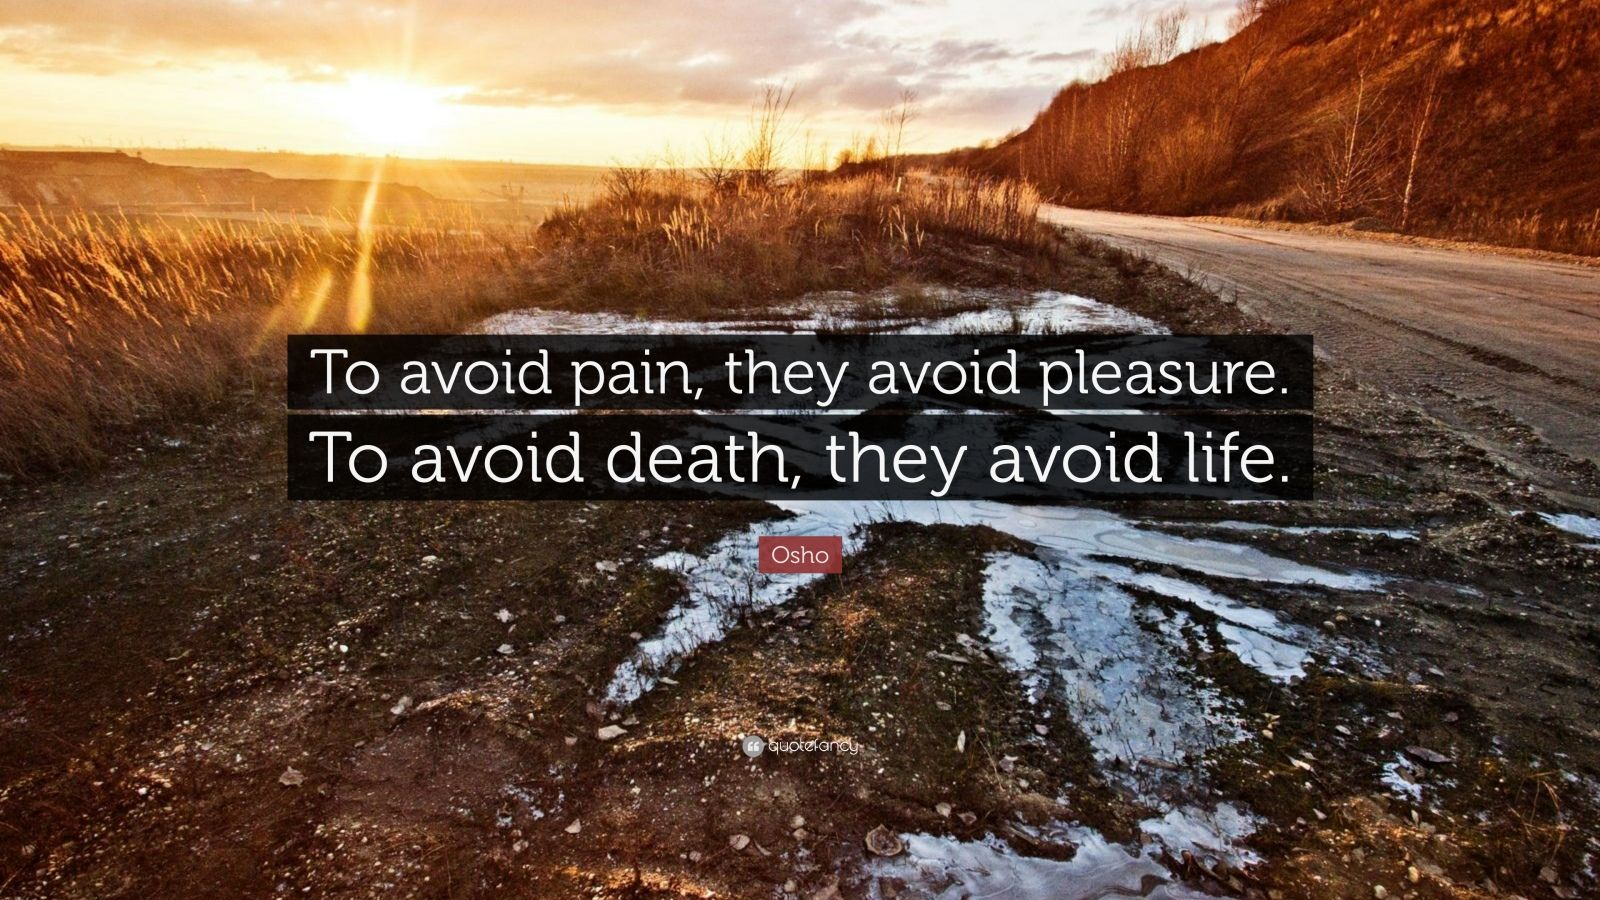 Osho Quote: To avoid pain, they avoid pleasure. To avoid